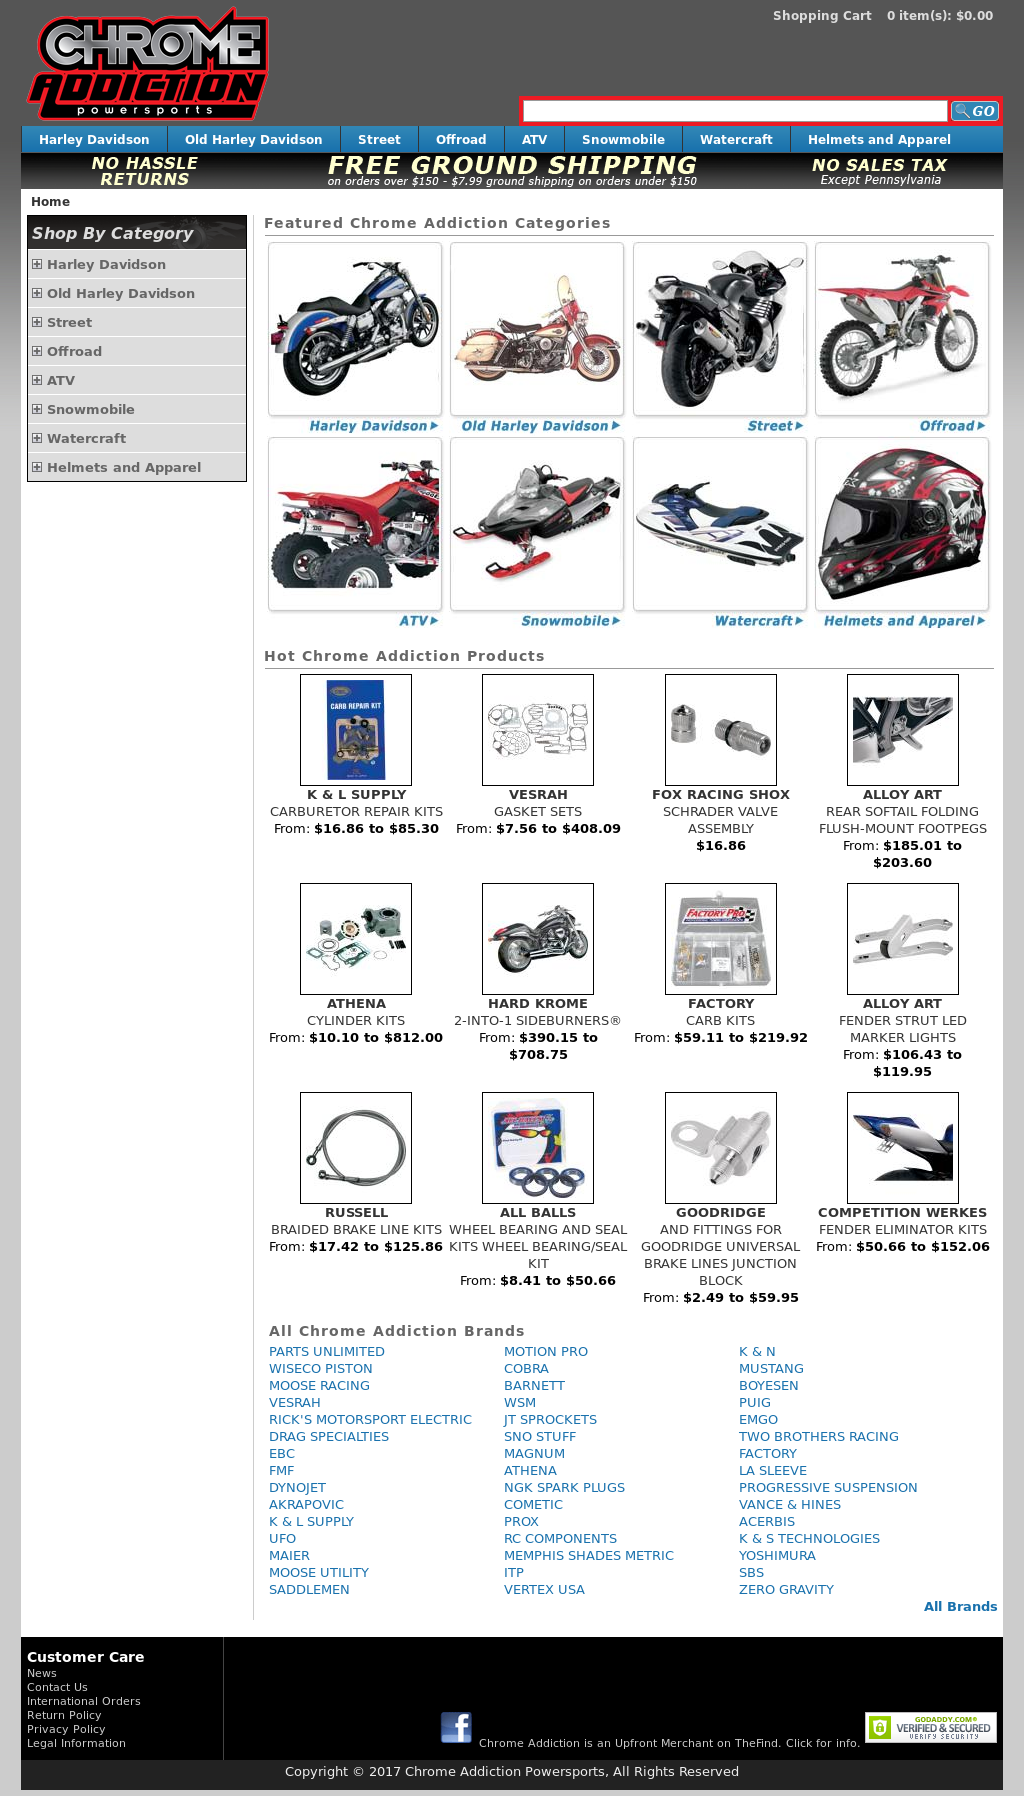 Chrome Addiction Powersports Competitors, Revenue and Employees